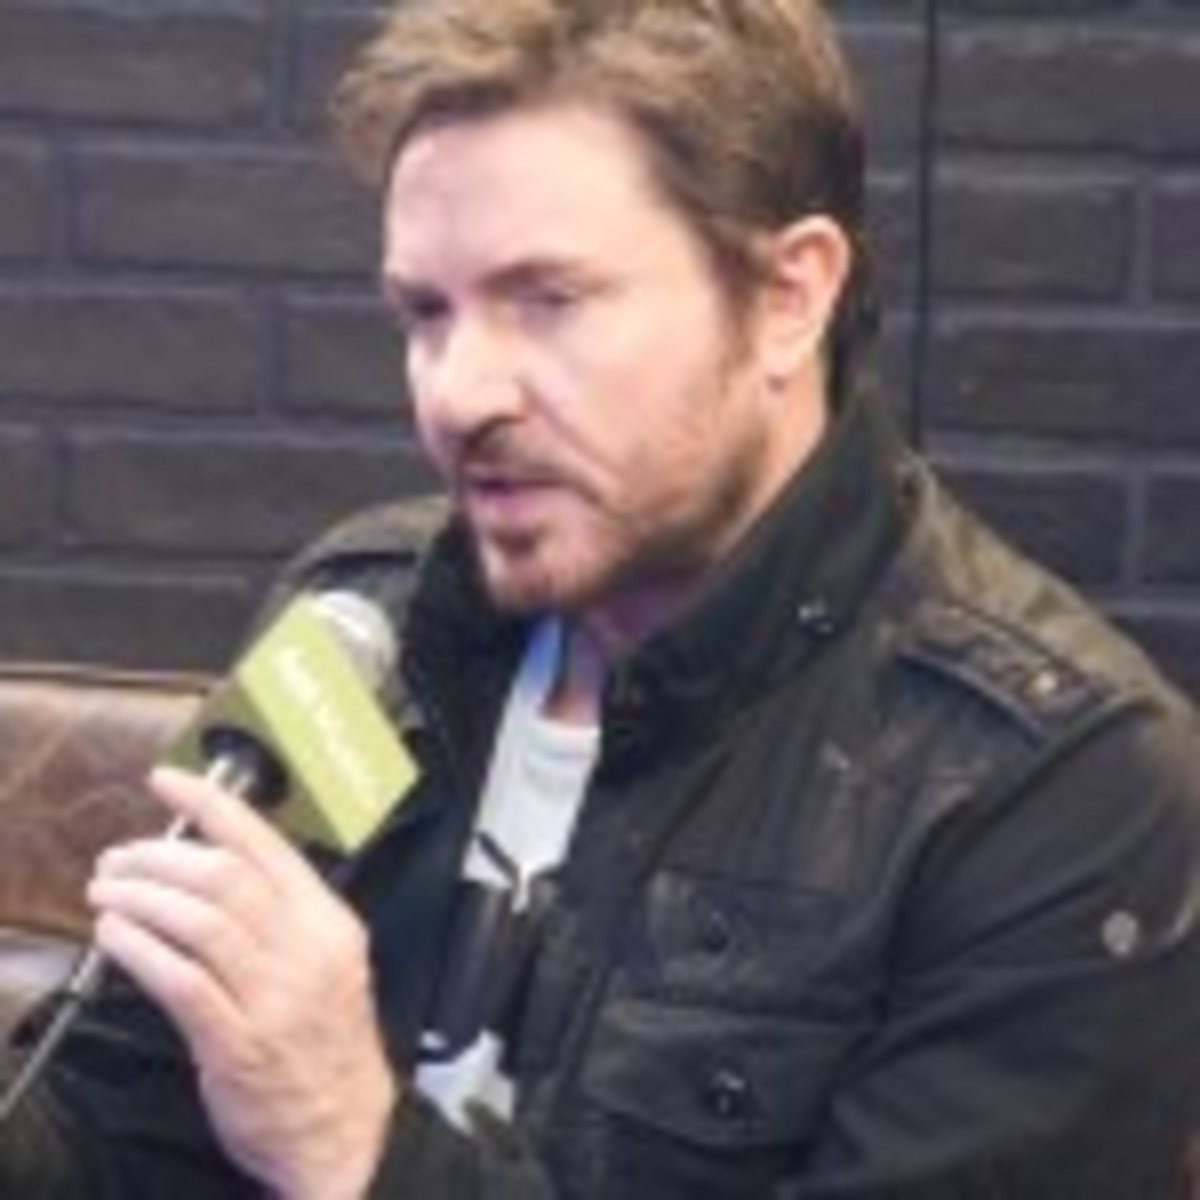 Following his band's SXSW interview with John Norris on March 17, Duran Duran singer Simon LeBon taped an AOL Music segment at the Austin Convention Center. (Photo by Chris M. Junior)